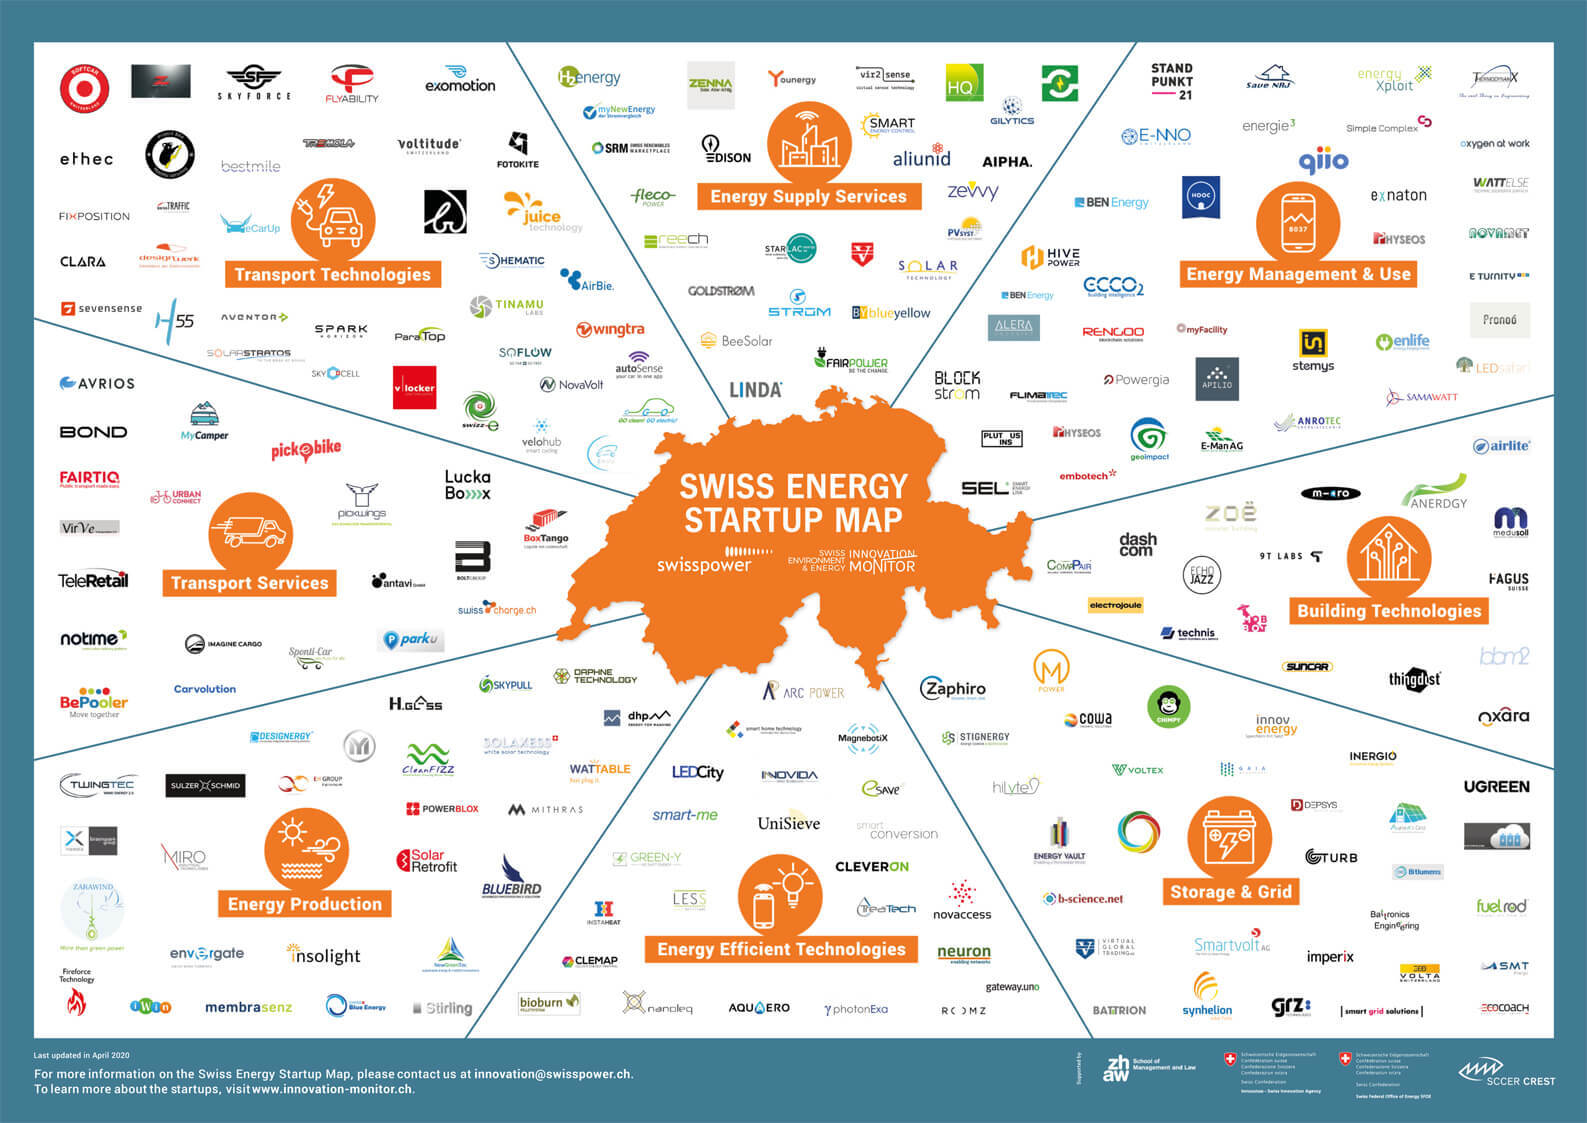 energy-startup-map-2020